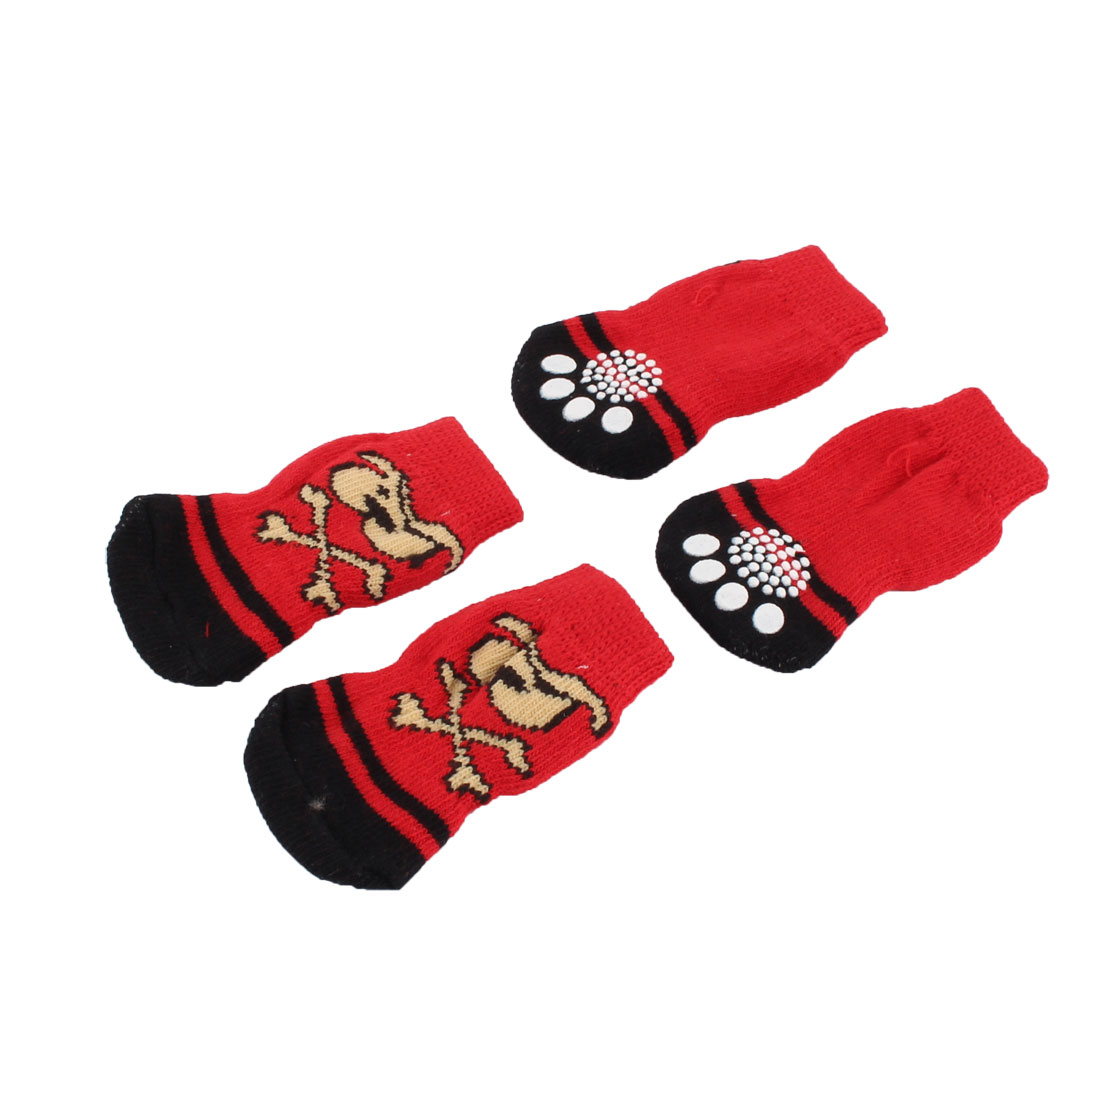 Indoor Cotton Paw Printed Anti-slip Elastic Knitted Skid Bottom Pet Dog Socks 2 Pairs